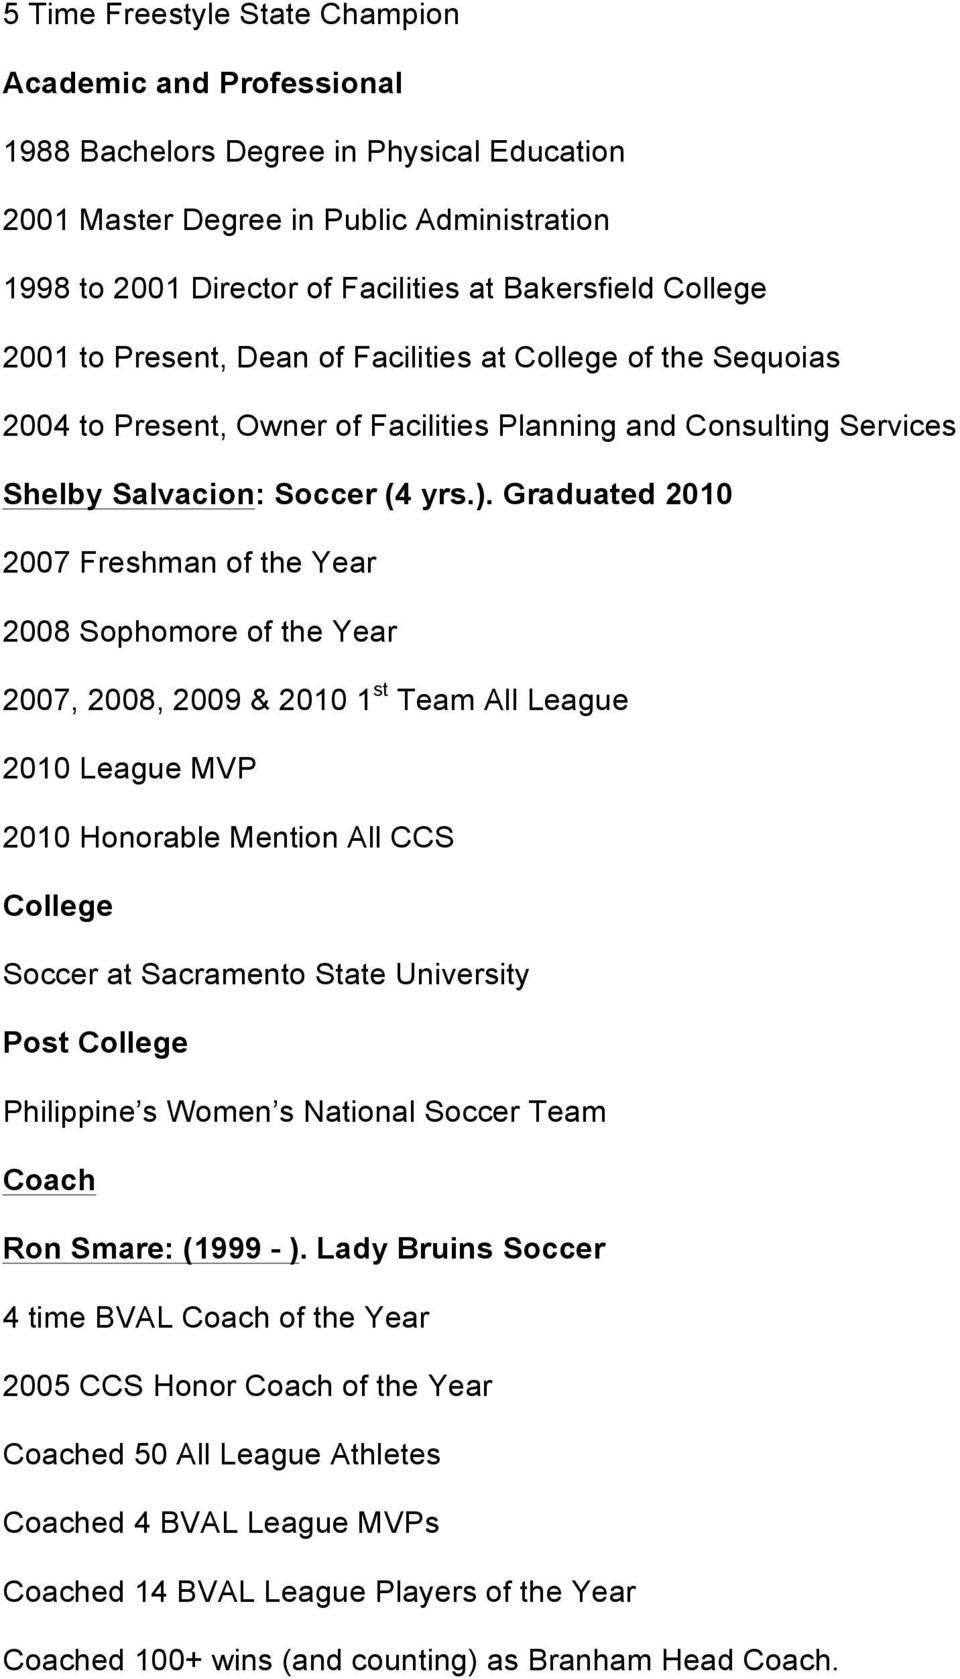 Graduated 2010 2007 Freshman of the Year 2008 Sophomore of the Year 2007, 2008, 2009 & 2010 1 st Team All League 2010 League MVP 2010 Honorable Mention All CCS Soccer at Sacramento State University